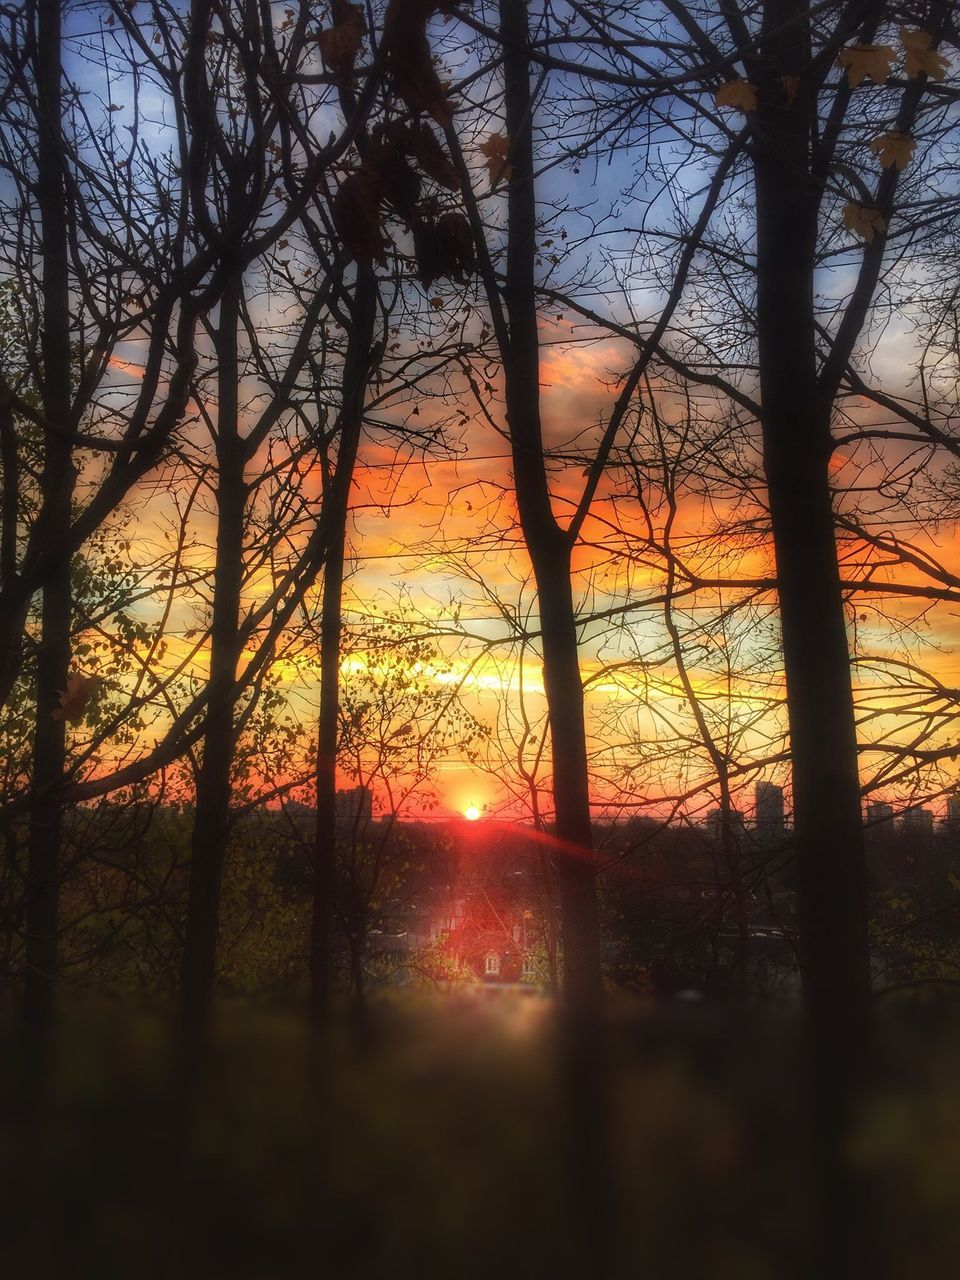 sunset, tree, tranquility, sun, bare tree, nature, tree trunk, beauty in nature, tranquil scene, no people, scenics, silhouette, sky, branch, forest, sunlight, landscape, outdoors, forest fire, tree area, day